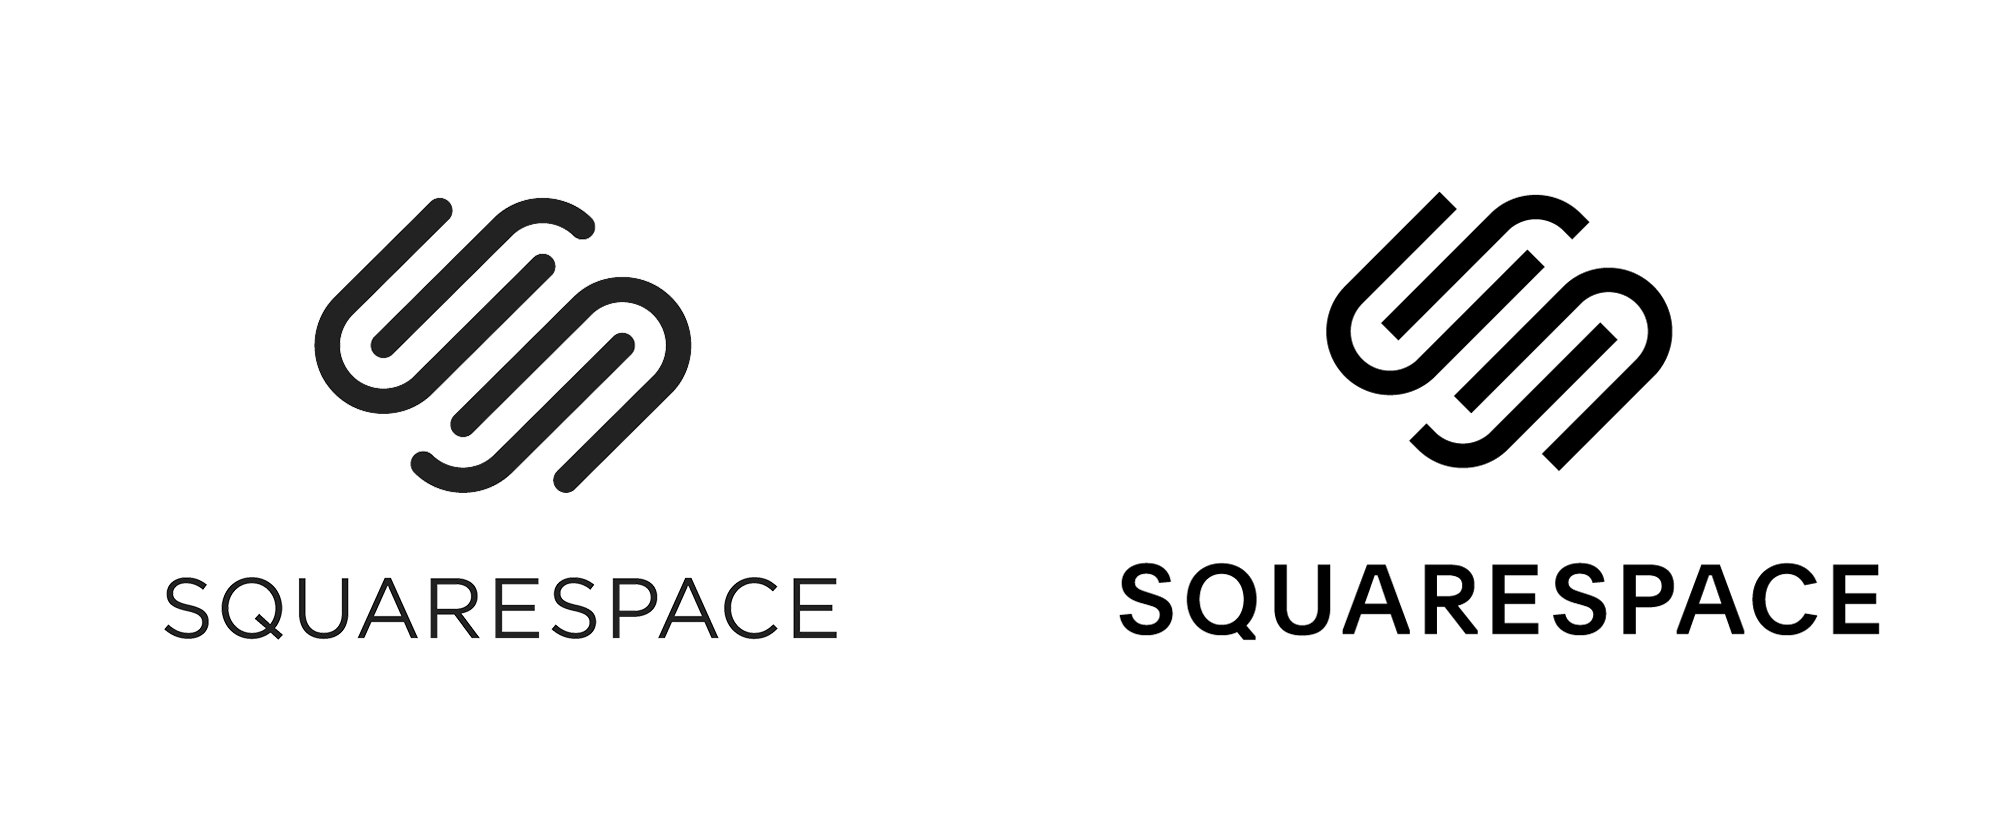 New Logo and Identity for Squarespace by DIA